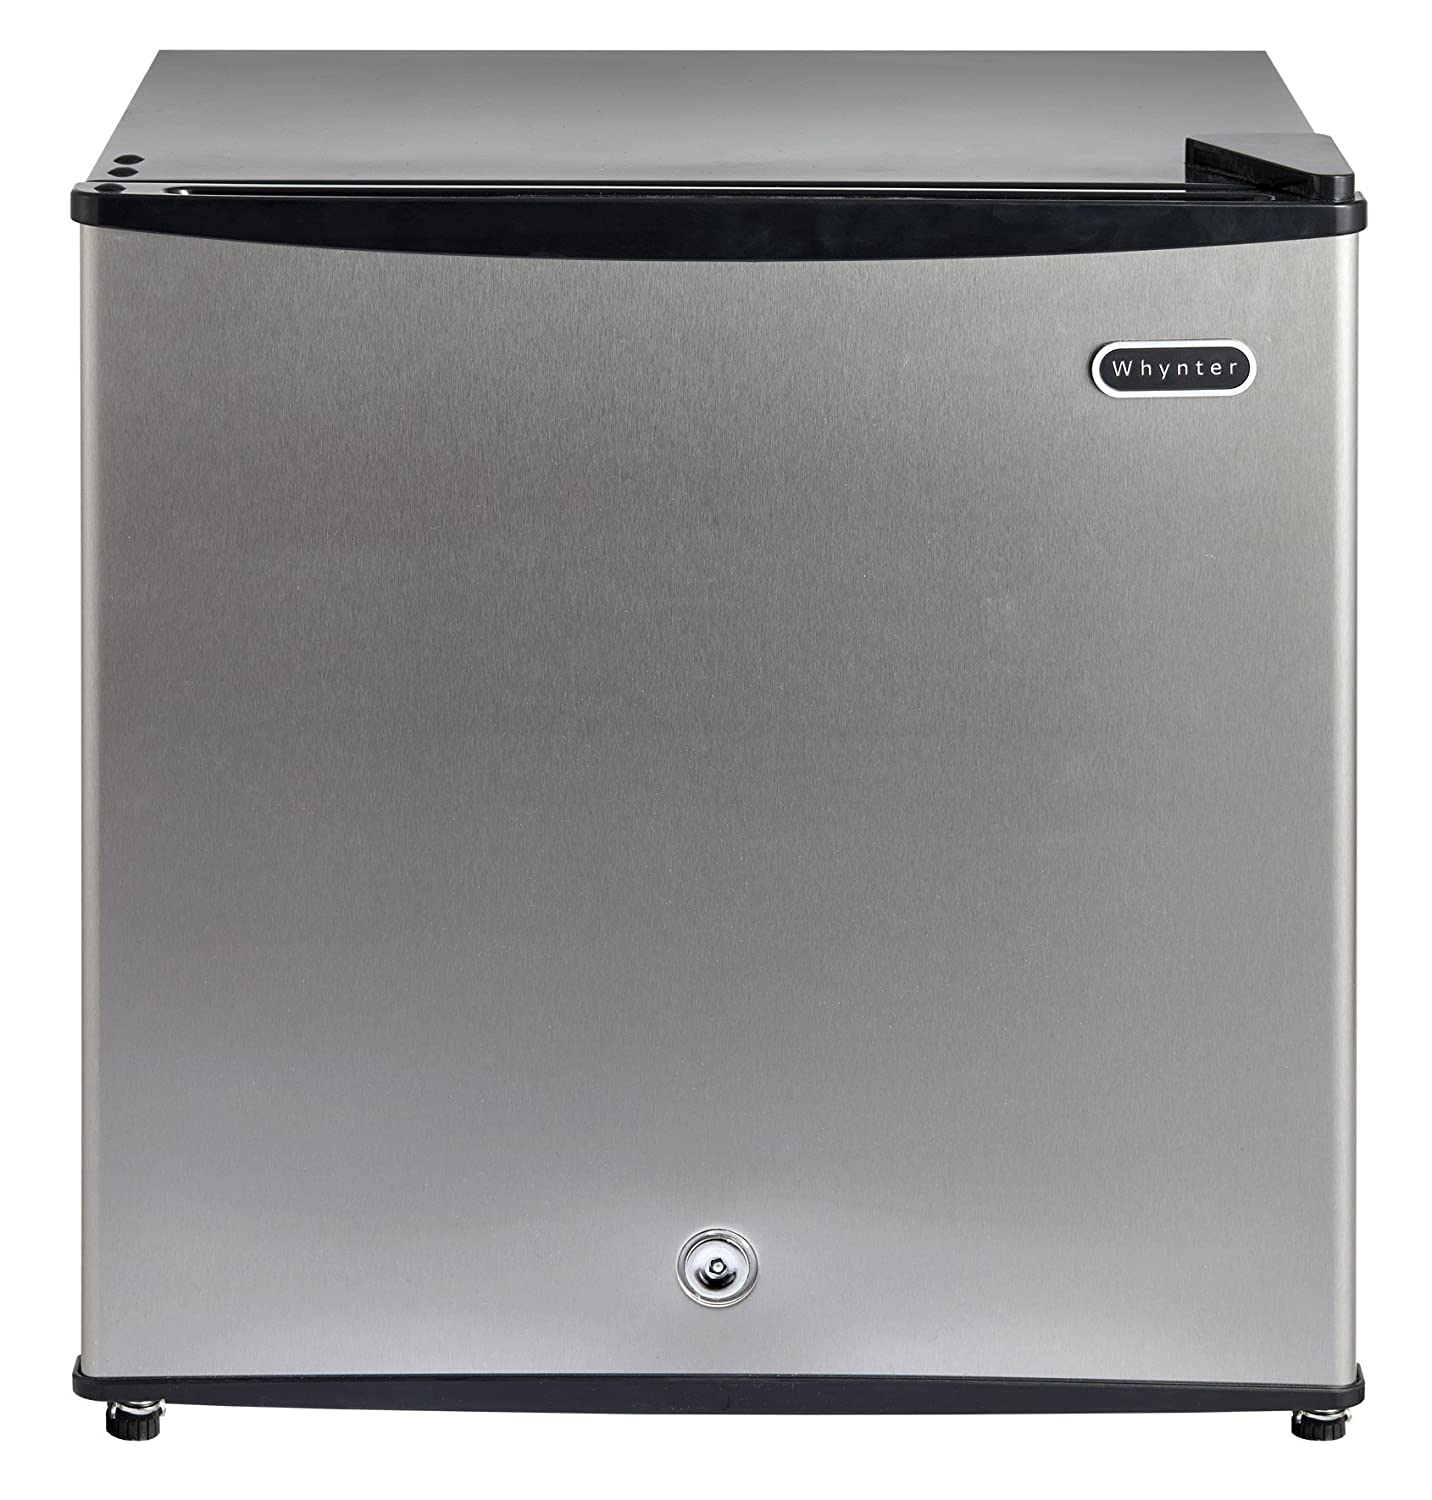 Whynter CUF-112SS 1.1 cu. ft. Energy Star Upright Lock-Stainless Steel Freezer Cubic Feet